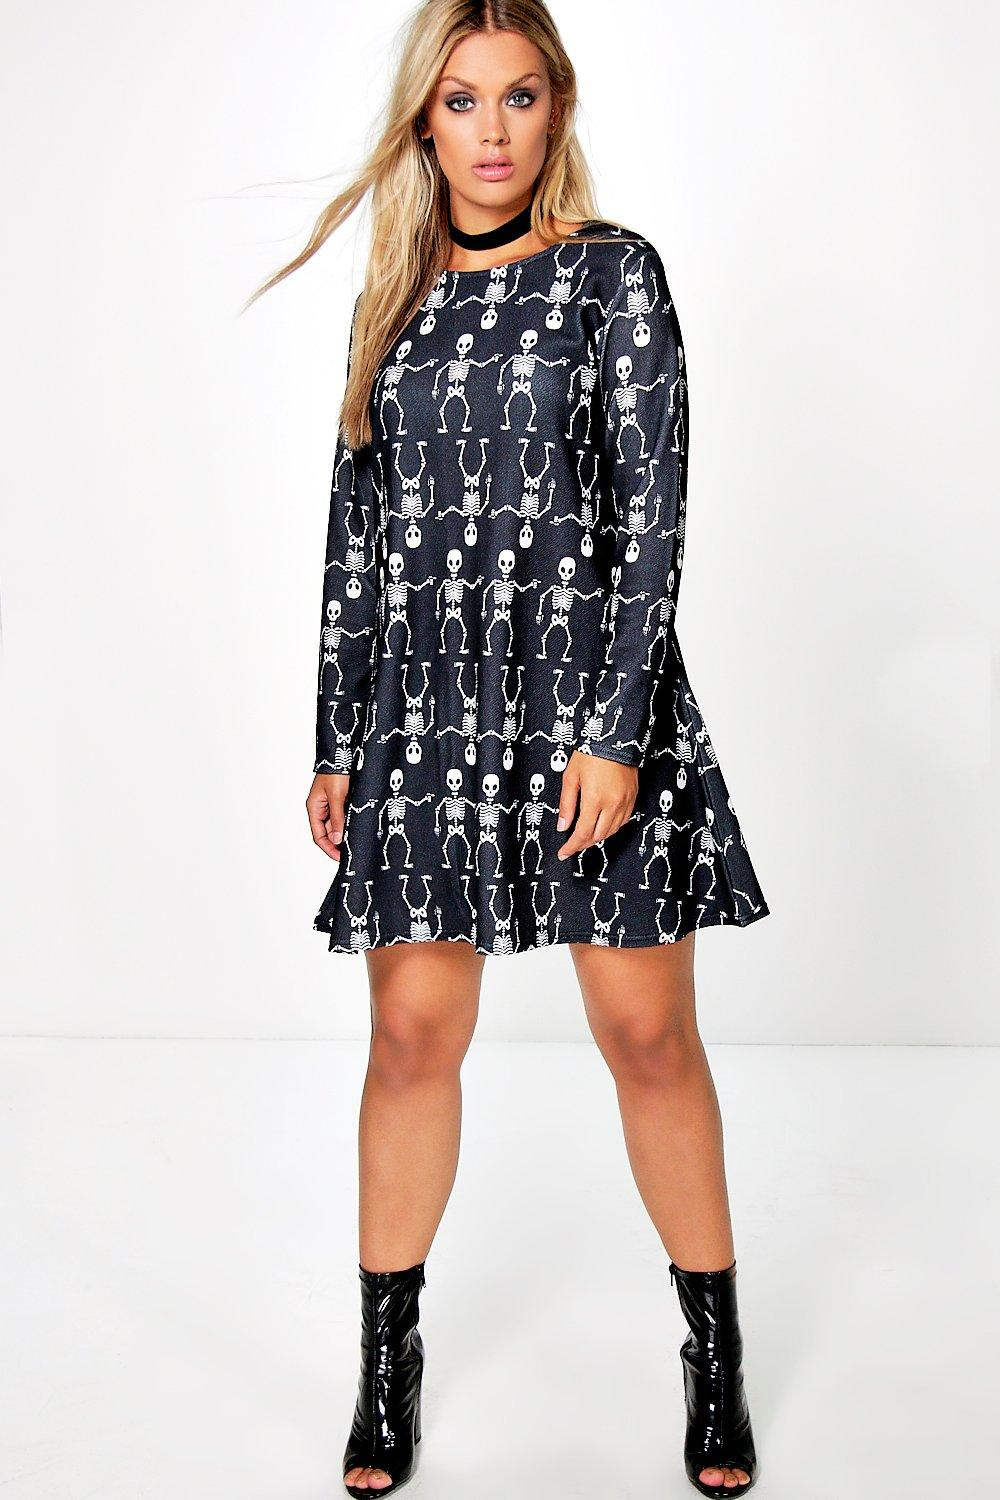 Plus Sadie Skeleton Novelty Halloween Swing Dress